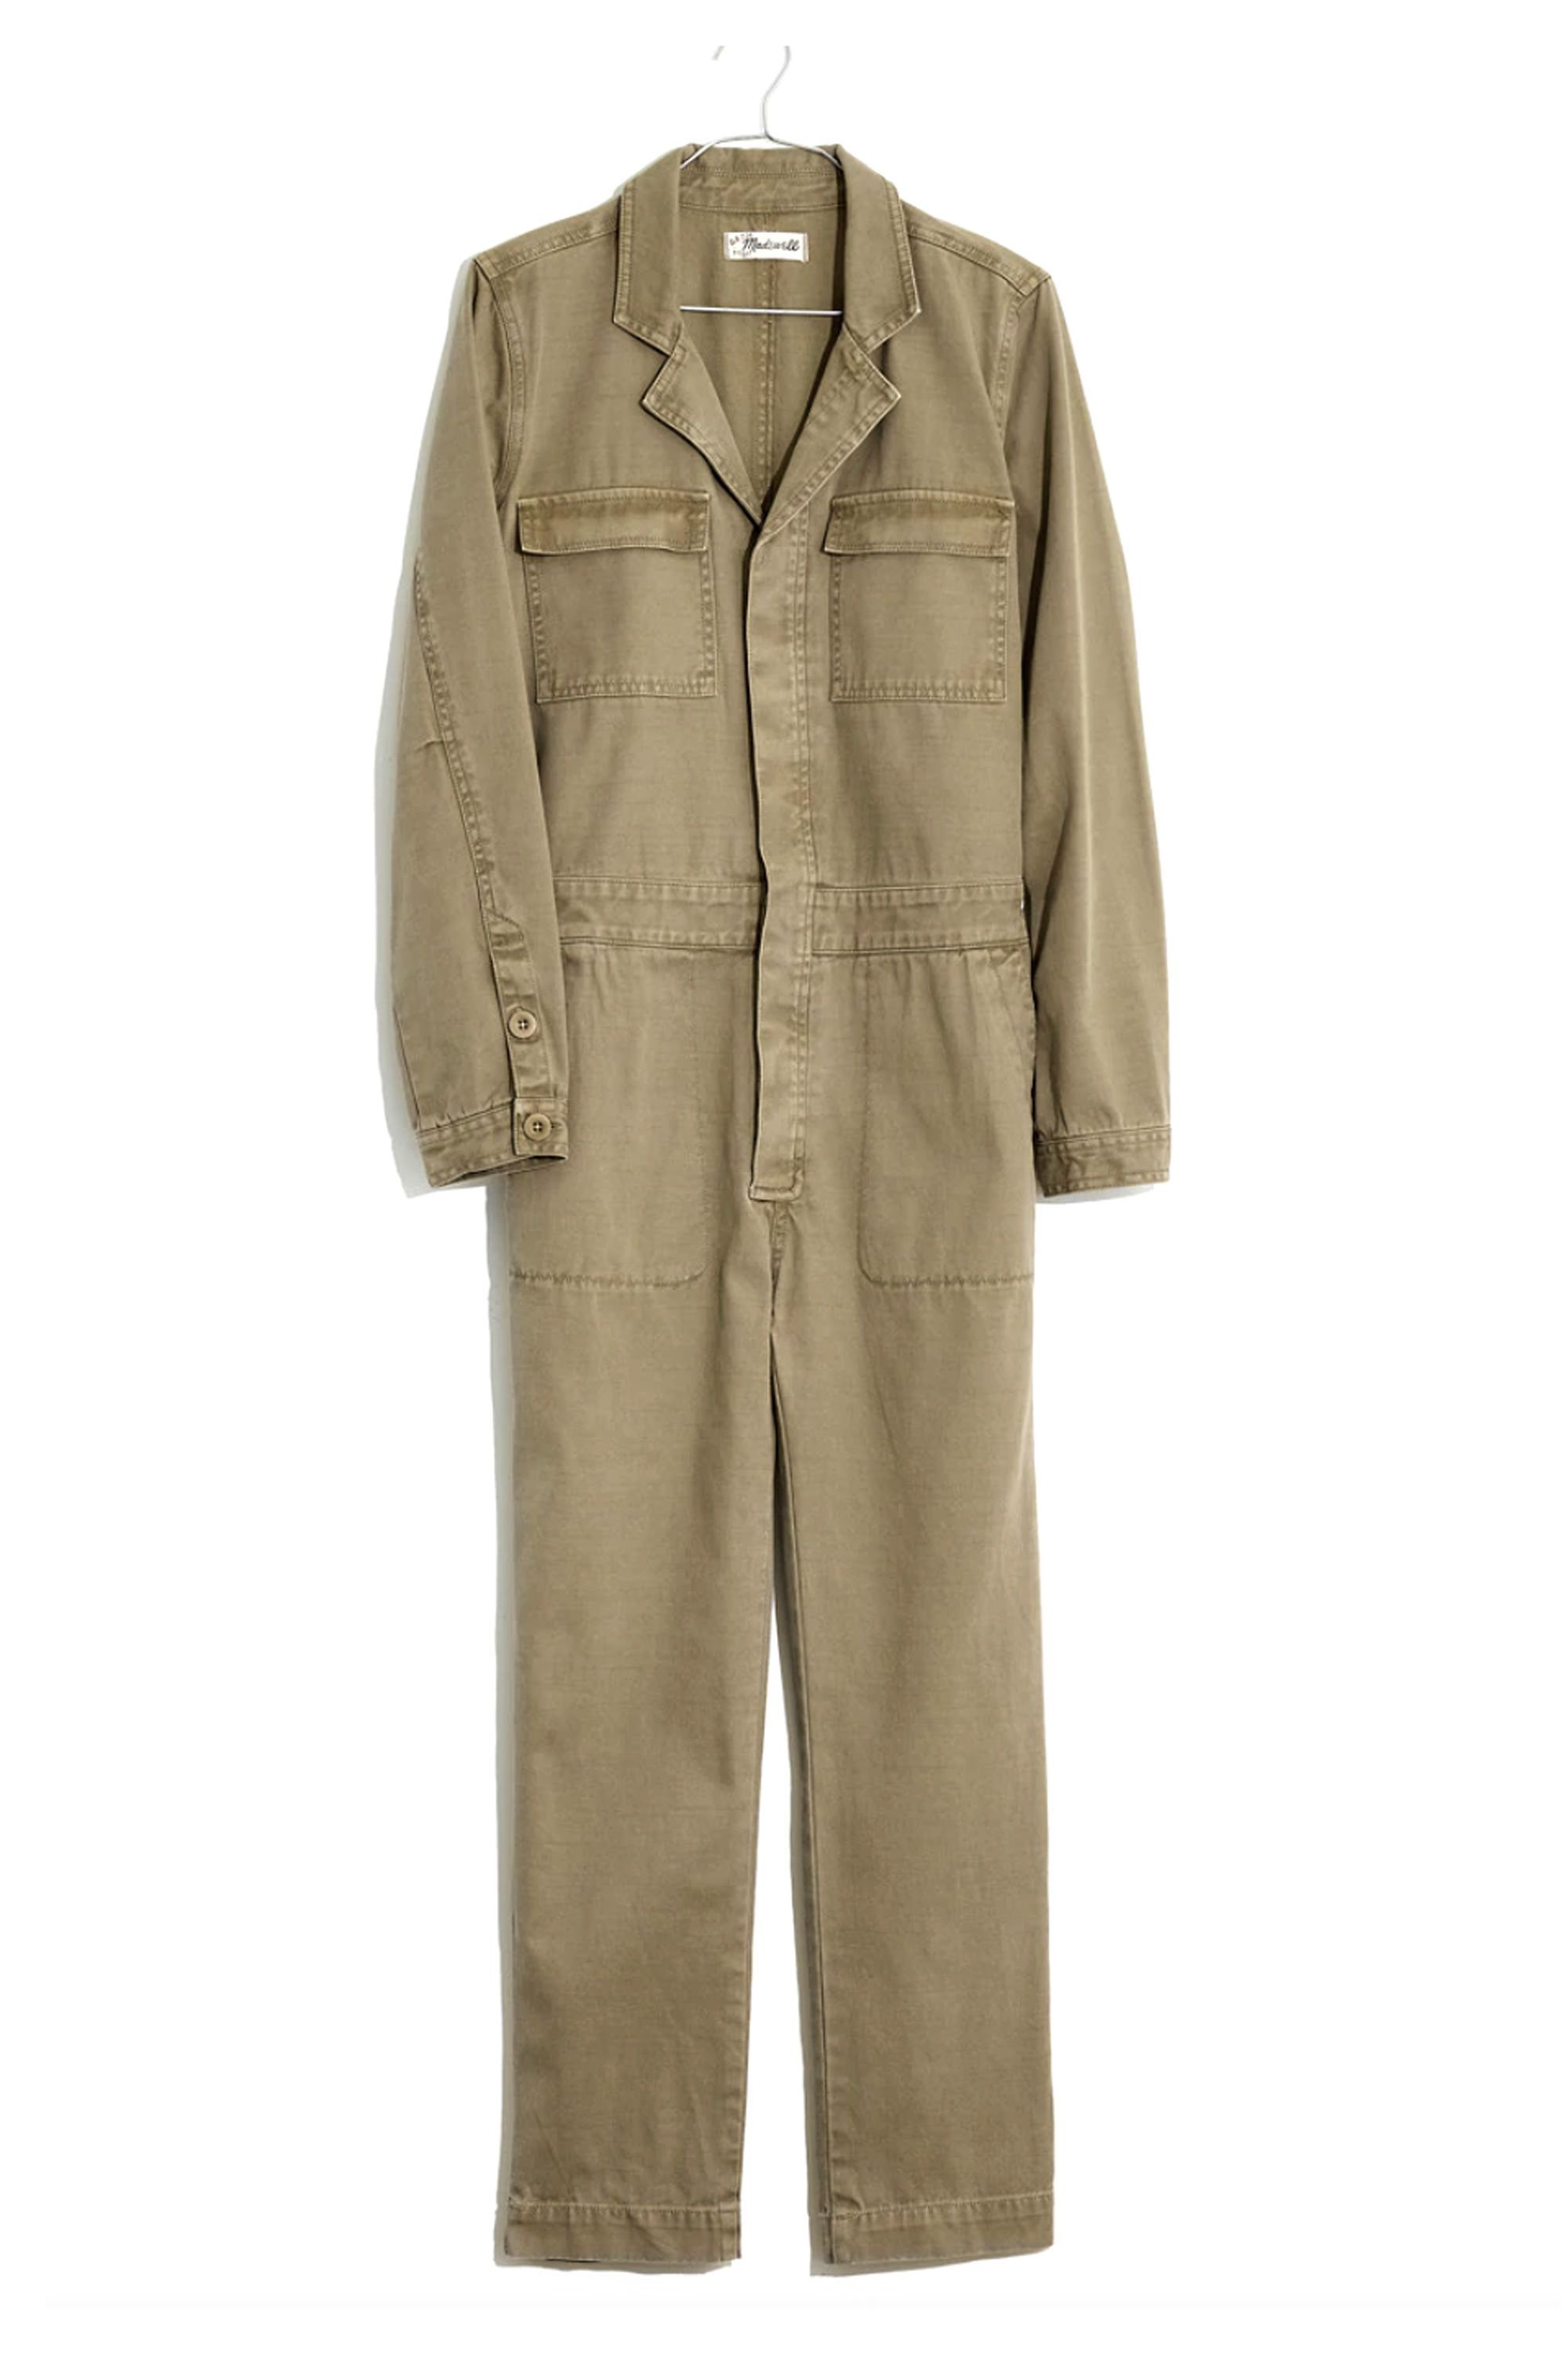 Coverall Jumpsuit Madewell madewell.com $148.00 SHOP NOW You'll likely end up buying one for yourself, too.